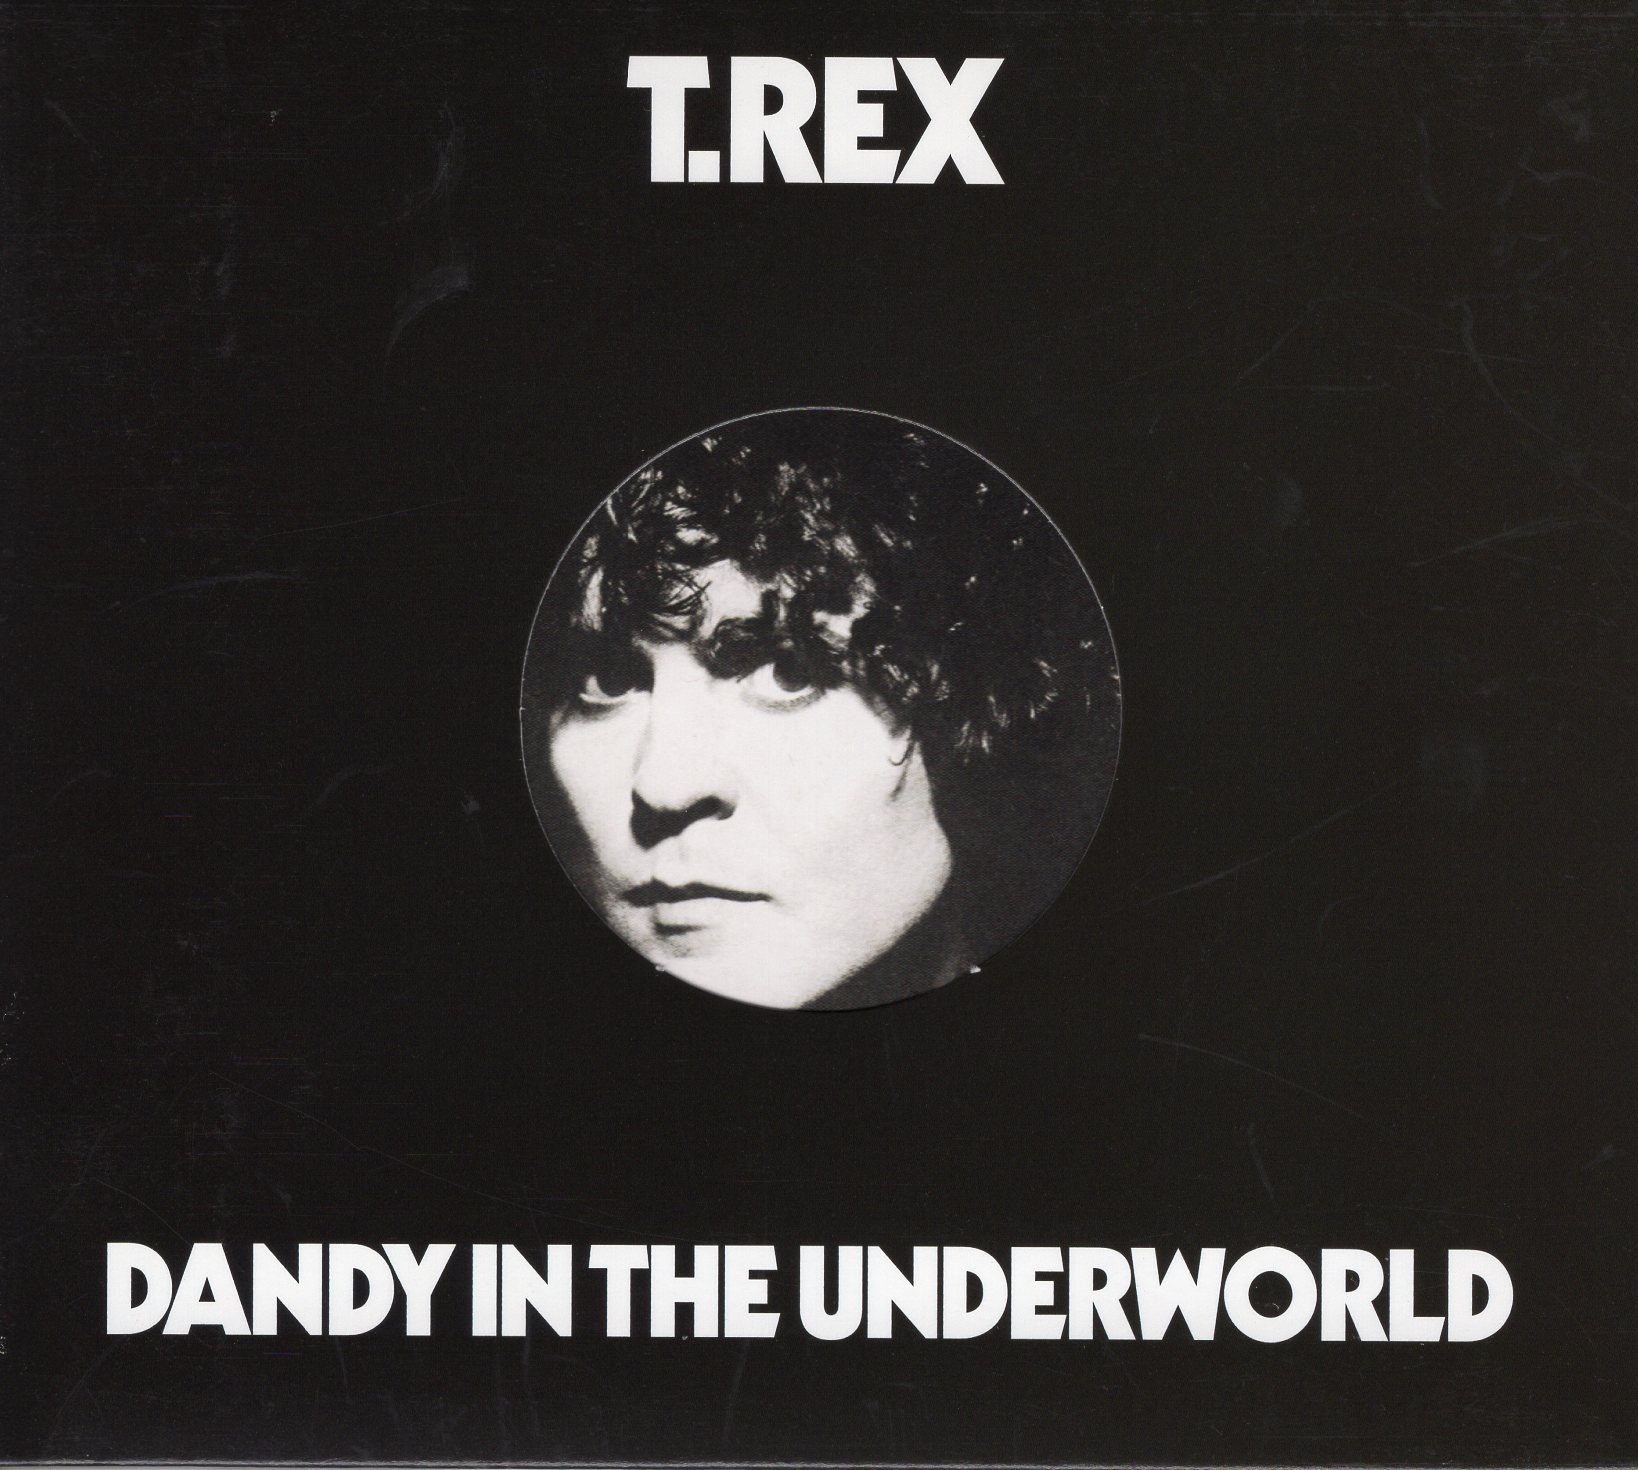 """Dandy in the Underworld"" Marc Bolan & T.REX"